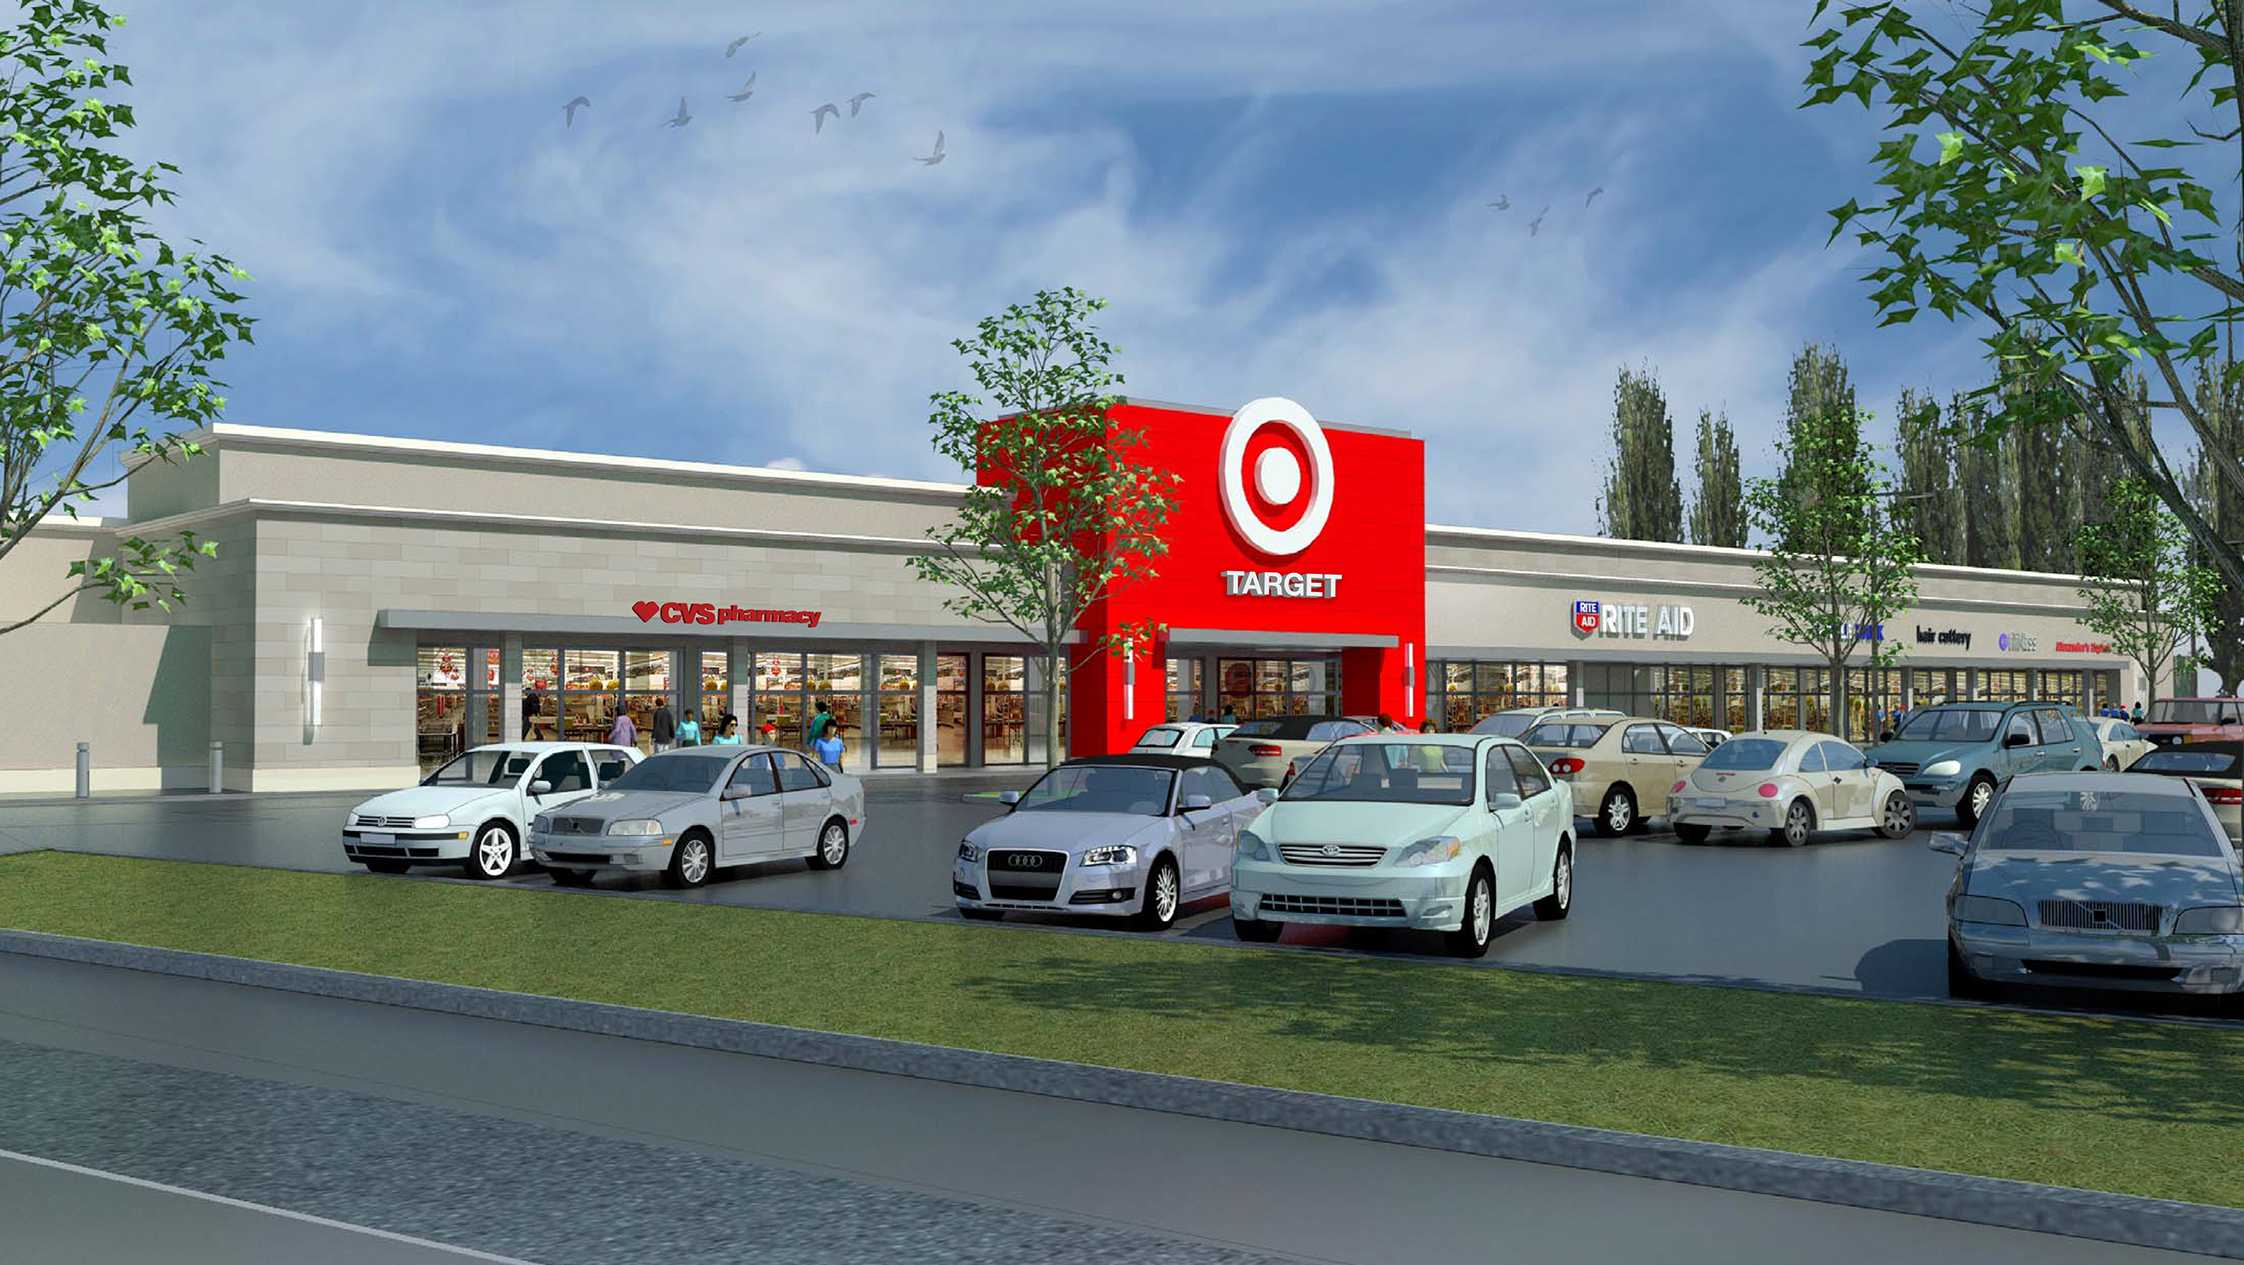 Target will replace Stop & Shop at Medford Plaza in Medford in March 2018.